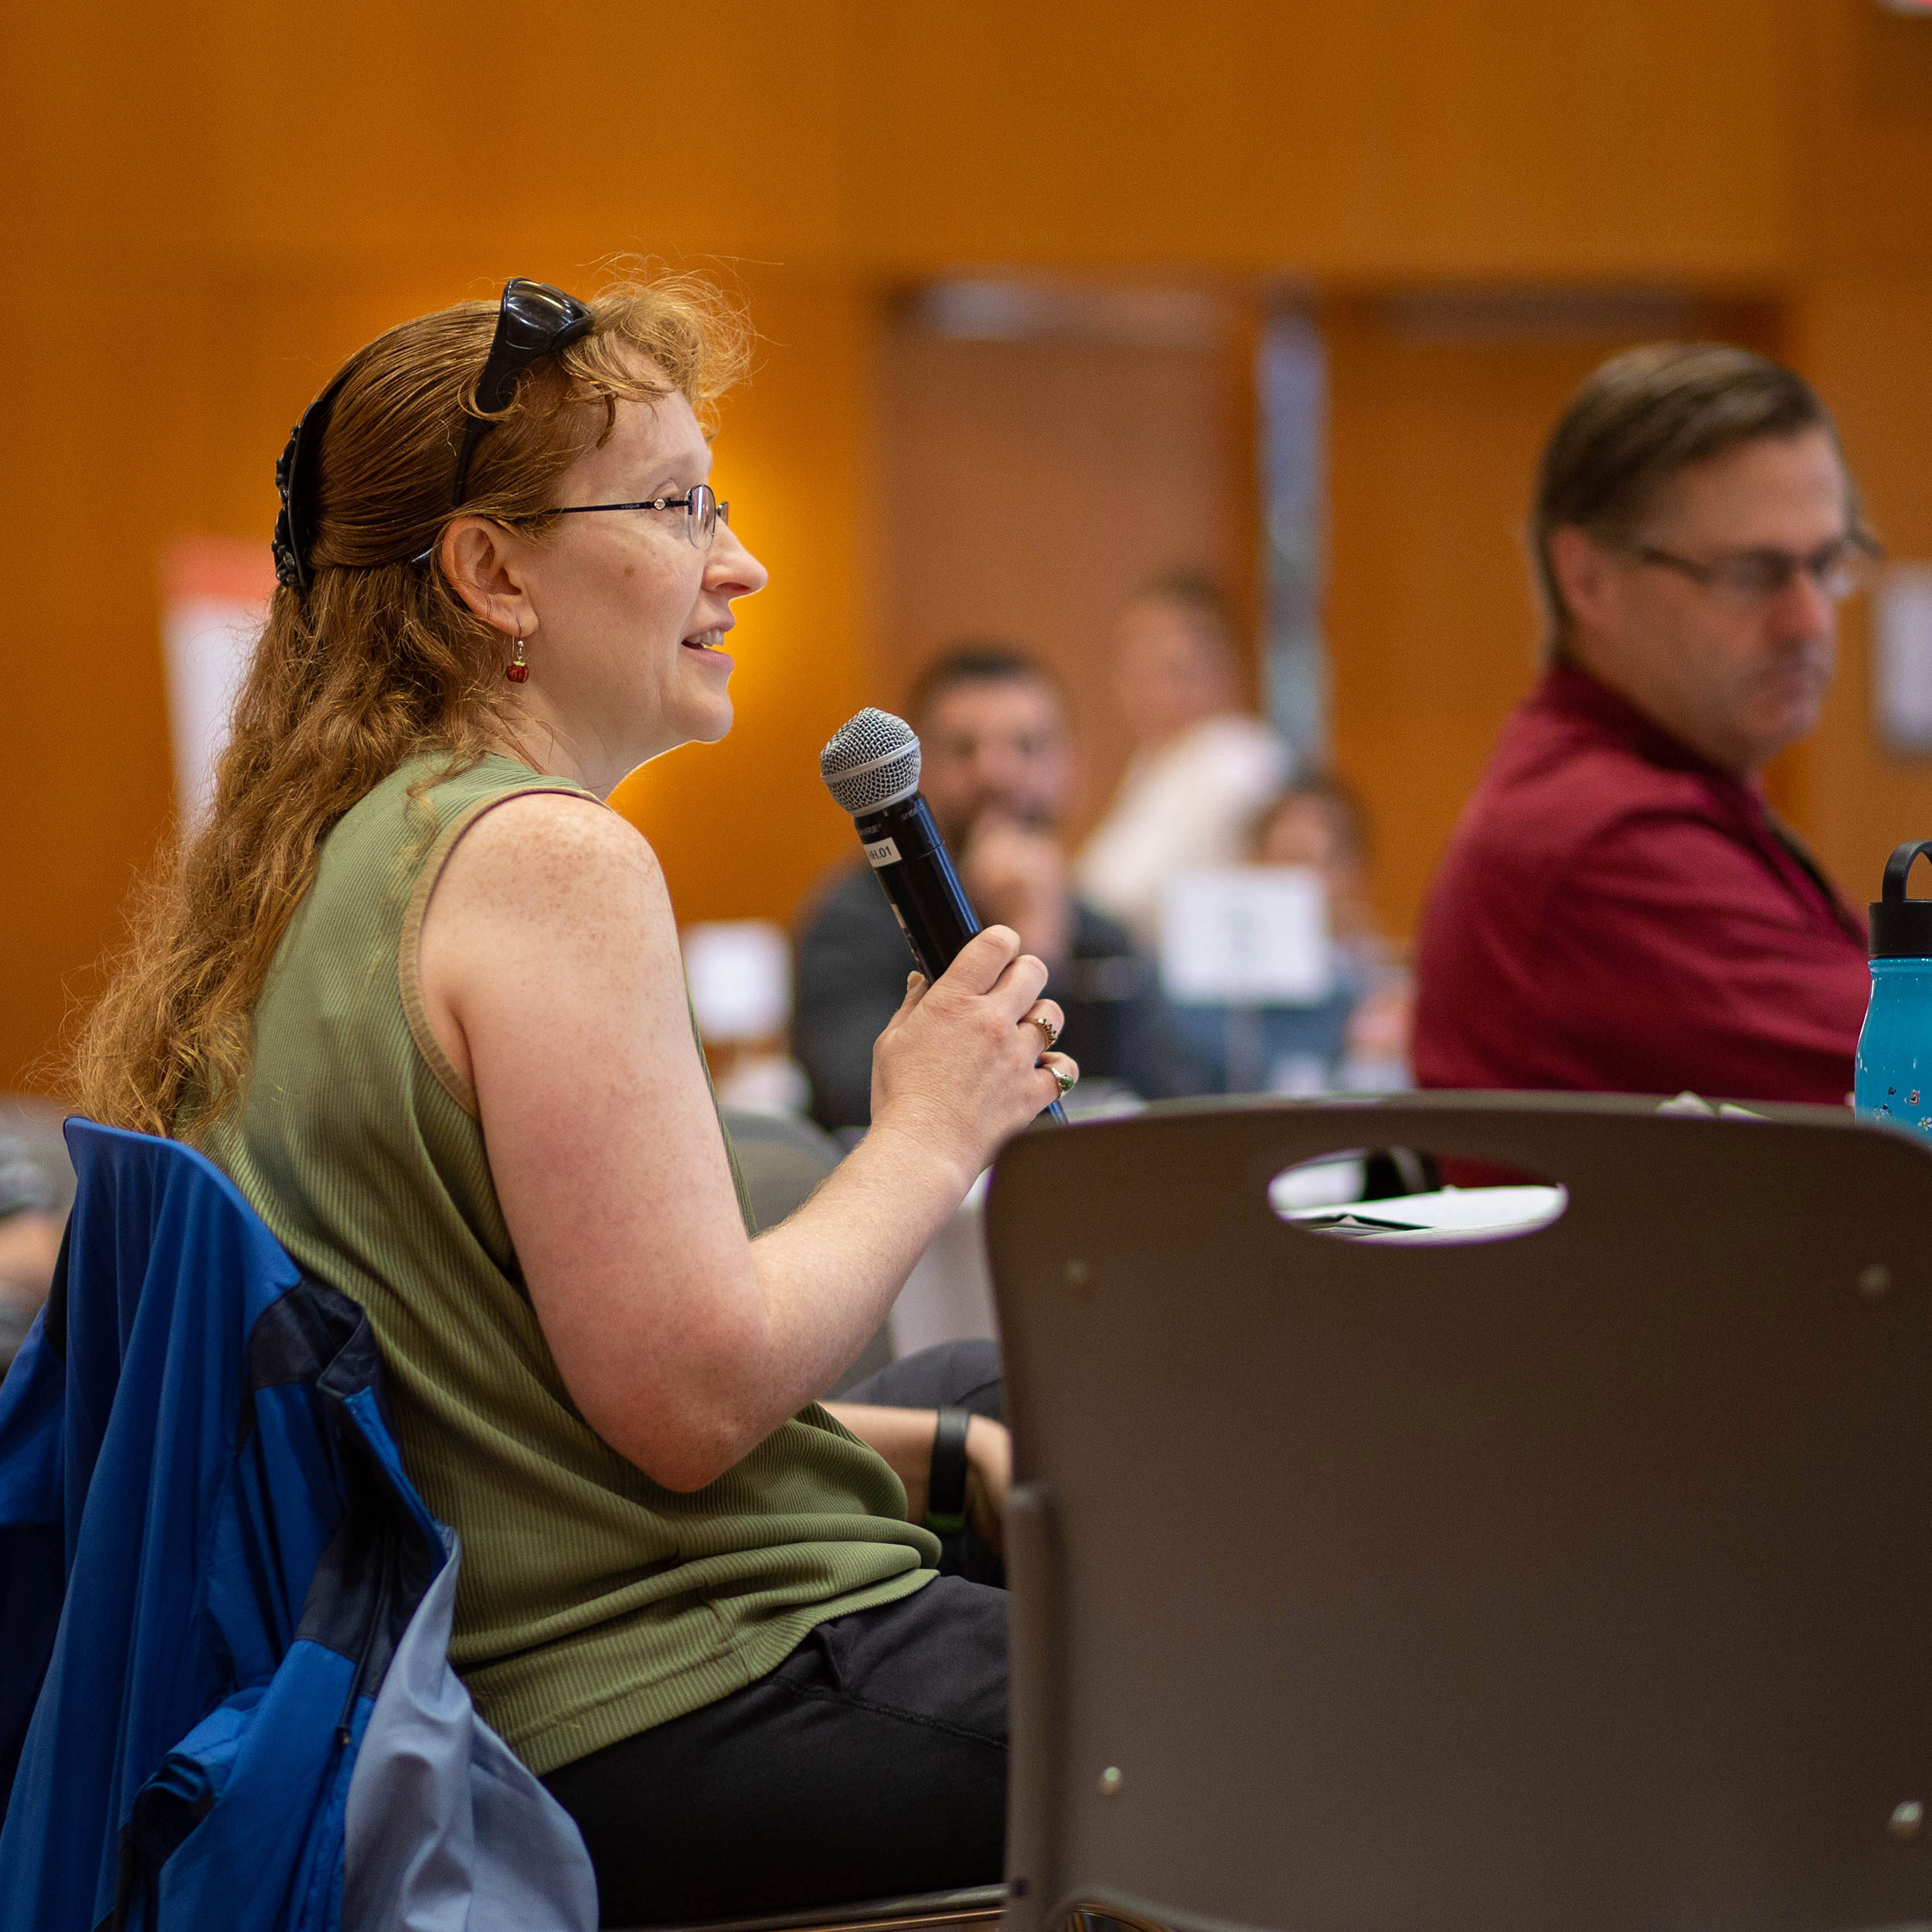 An audience member asks a question at the Flags symposium